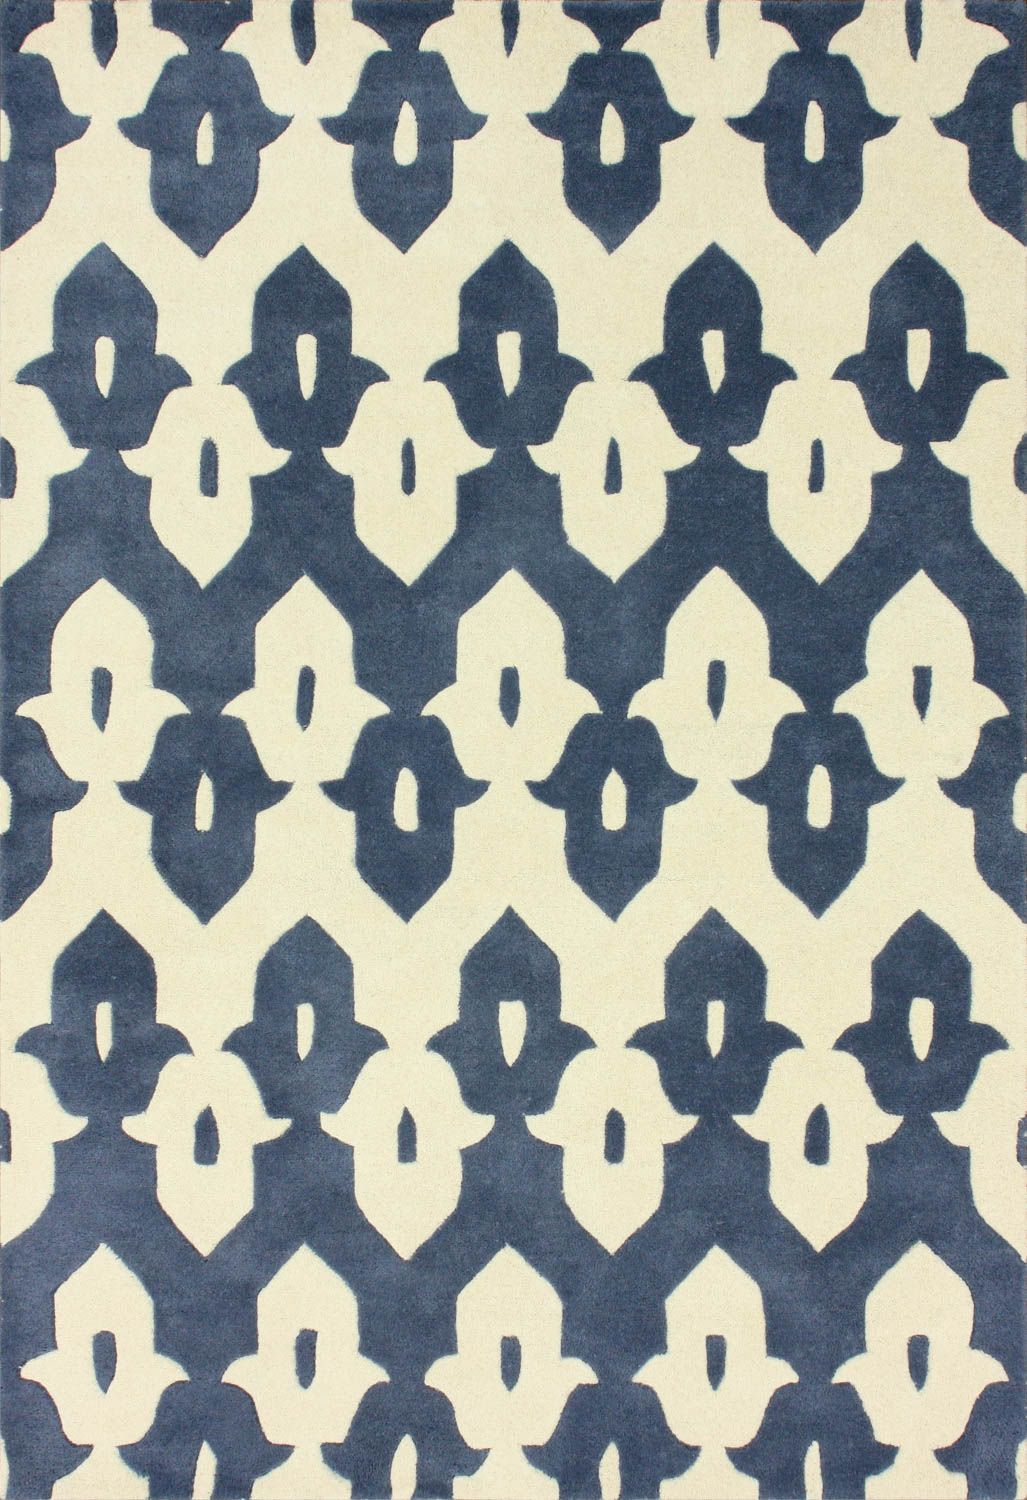 royal blue rug. Rugs USA Tuscan Palace Ikat Trellis Cobalt Blue Rug - 5x8 $115.25, 6x9 $145.75, Royal